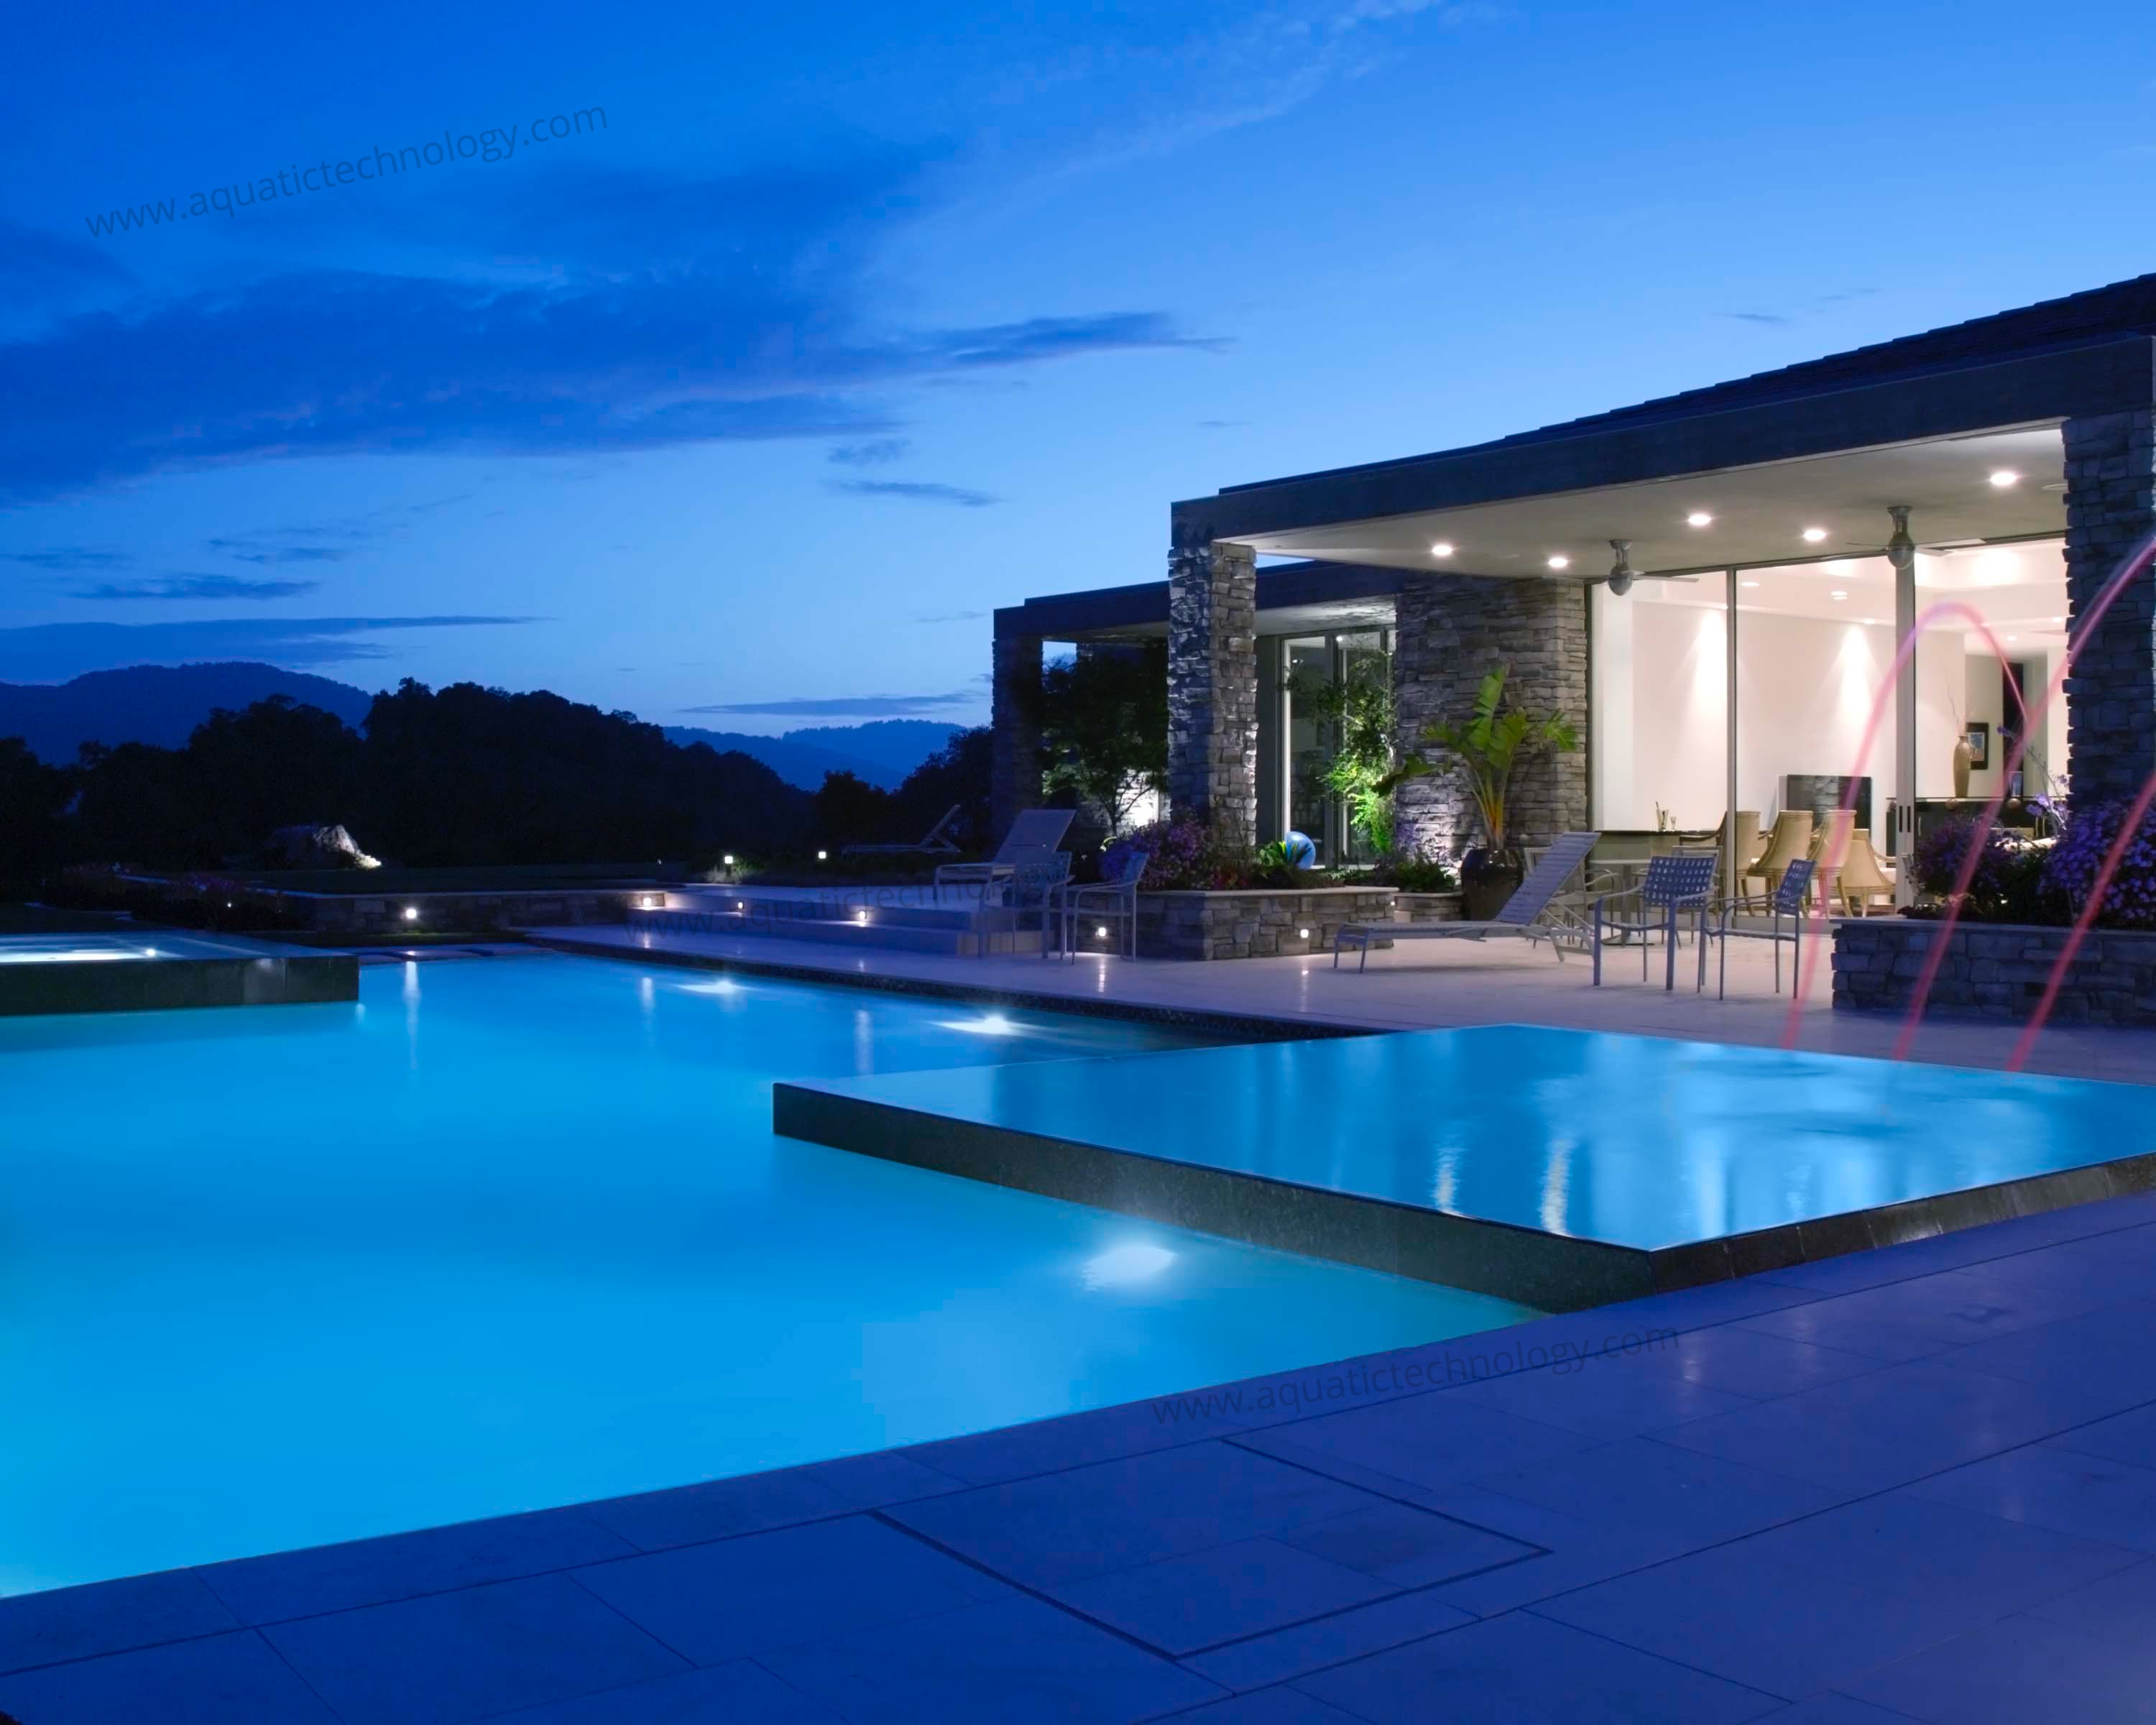 Nighttime infinity edge pool laminar fountains